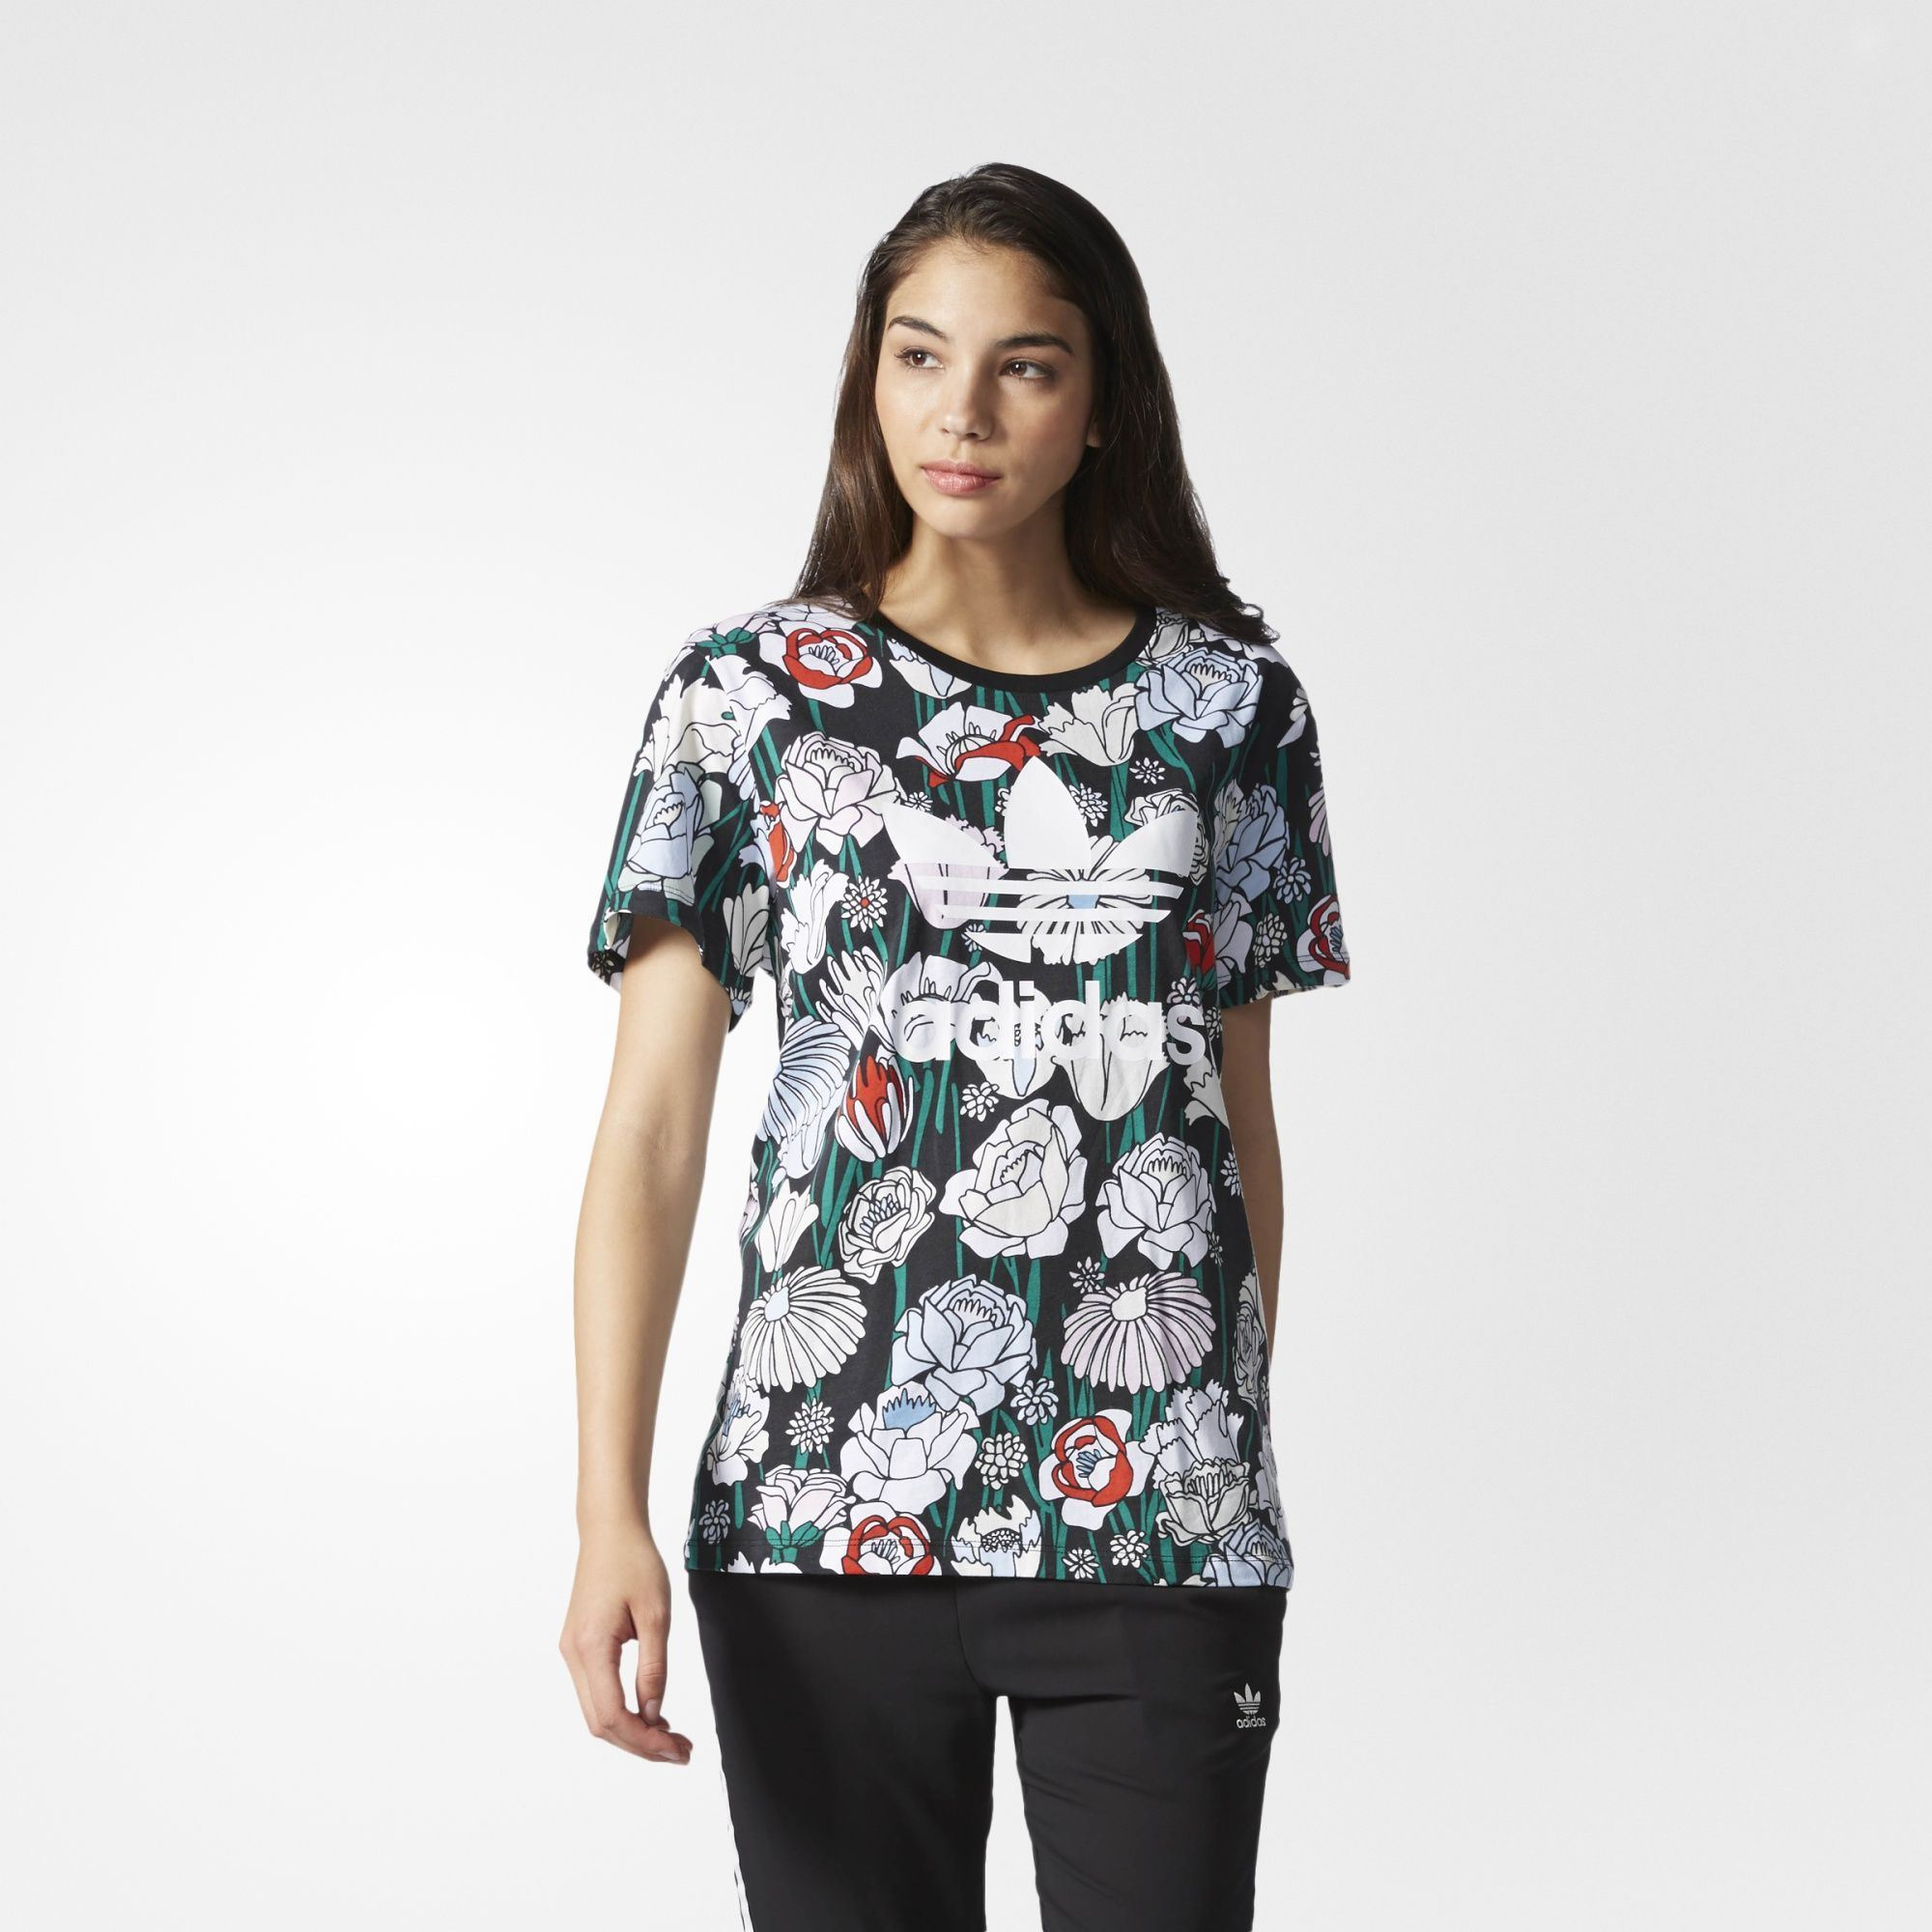 83a3c256 adidas Originals Women's Floral Boyfriend T-Shirt Top Tee Trefoil | AY7940.  All sizes listed are UK. See sizing tab below for conversions.